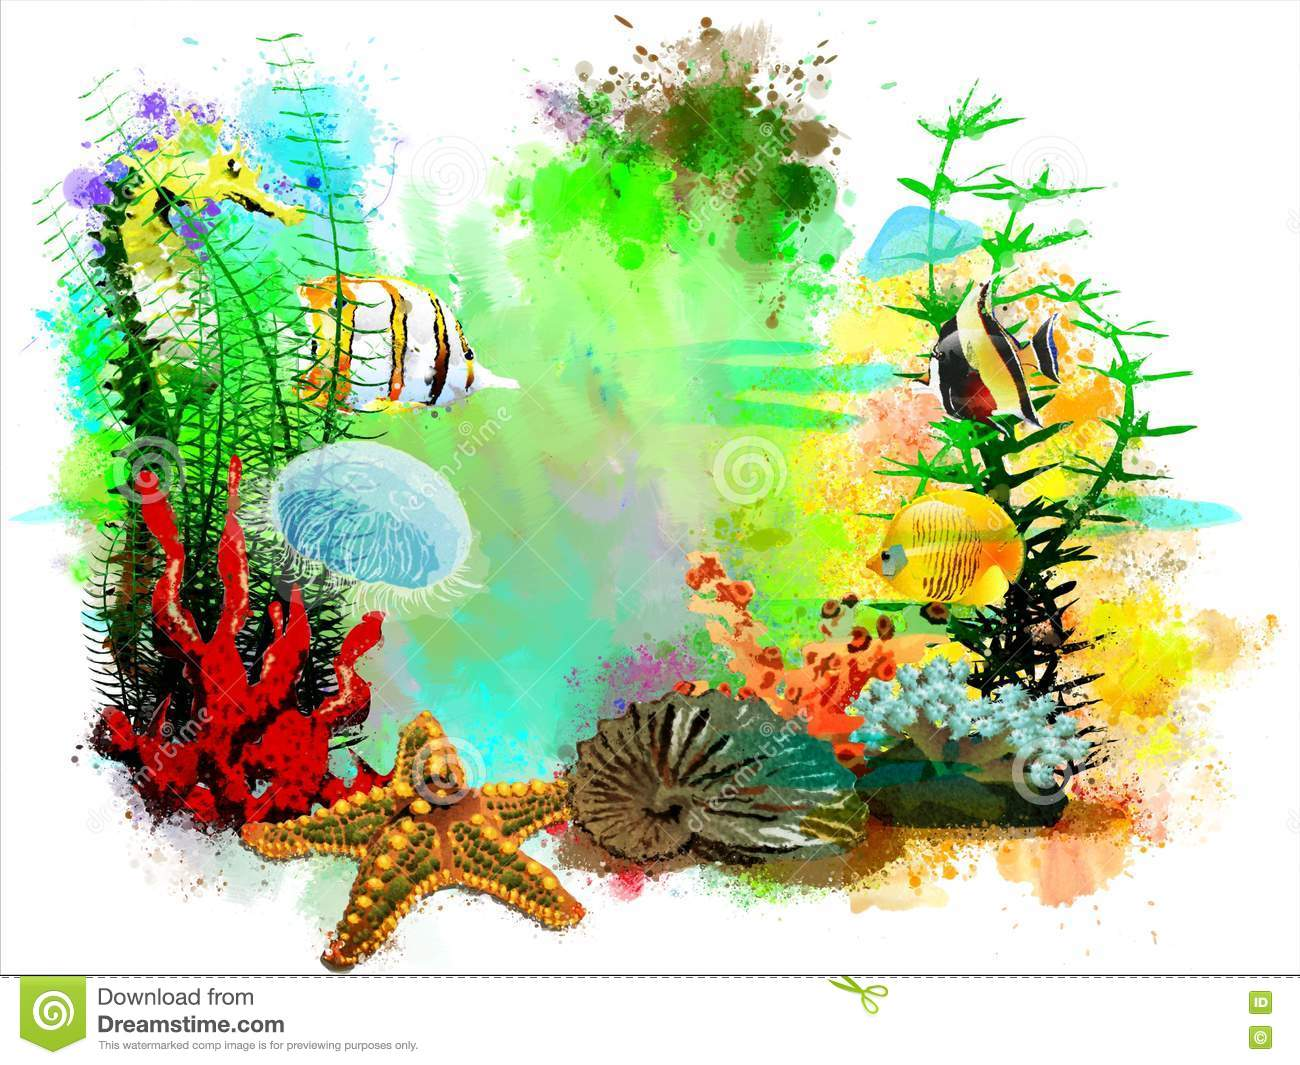 Underwater tropical world on an abstract watercolor background.